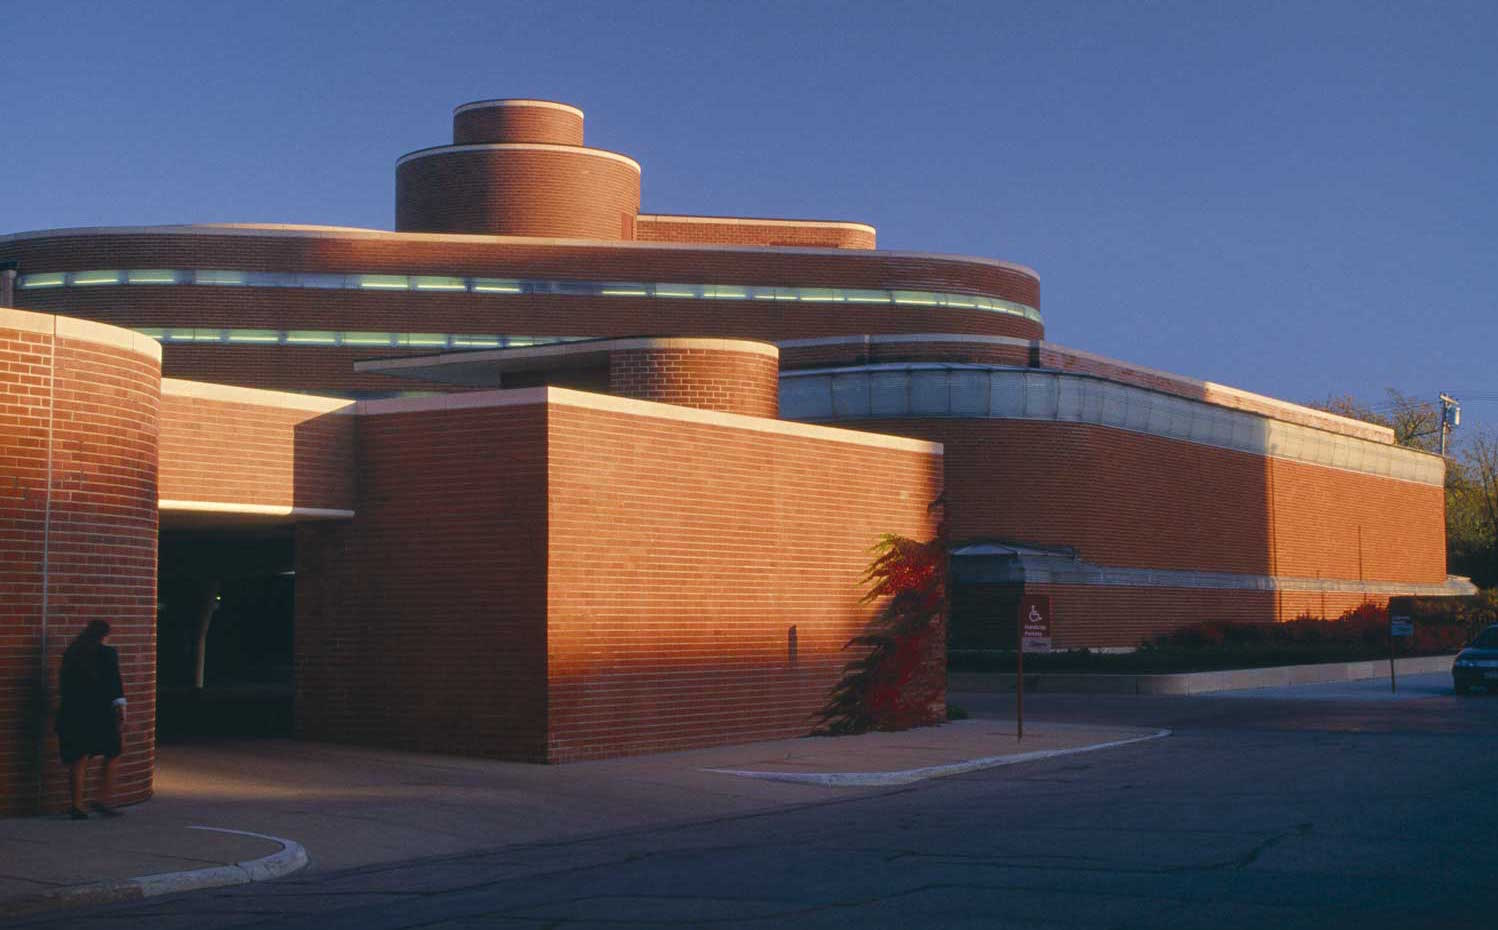 Sede de la compañía Johnson Wax en Wisconsin (1939) Frank Lloyd Wright